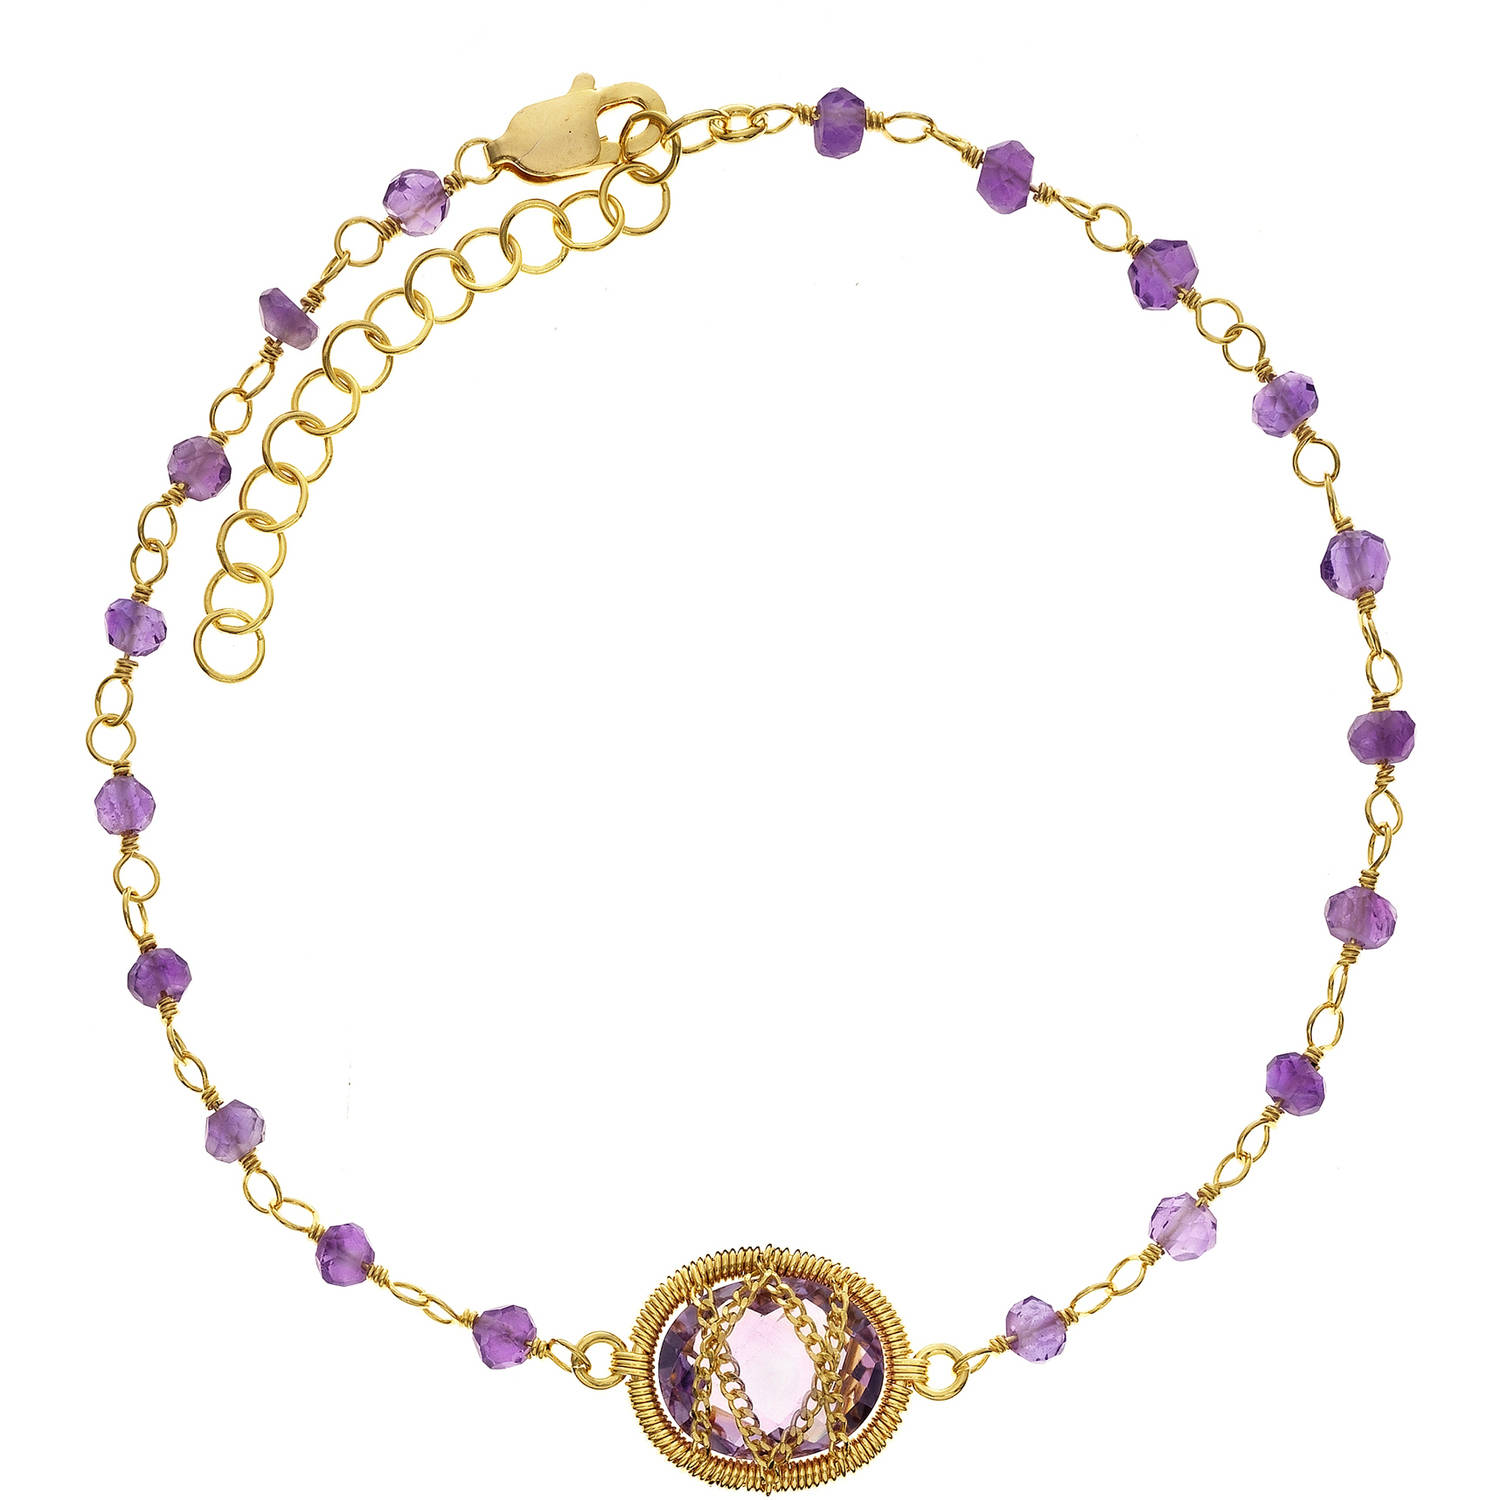 Image of 5th & Main 18kt Gold over Sterling Silver Hand-Wrapped Beaded Amethyst Stone Bracelet